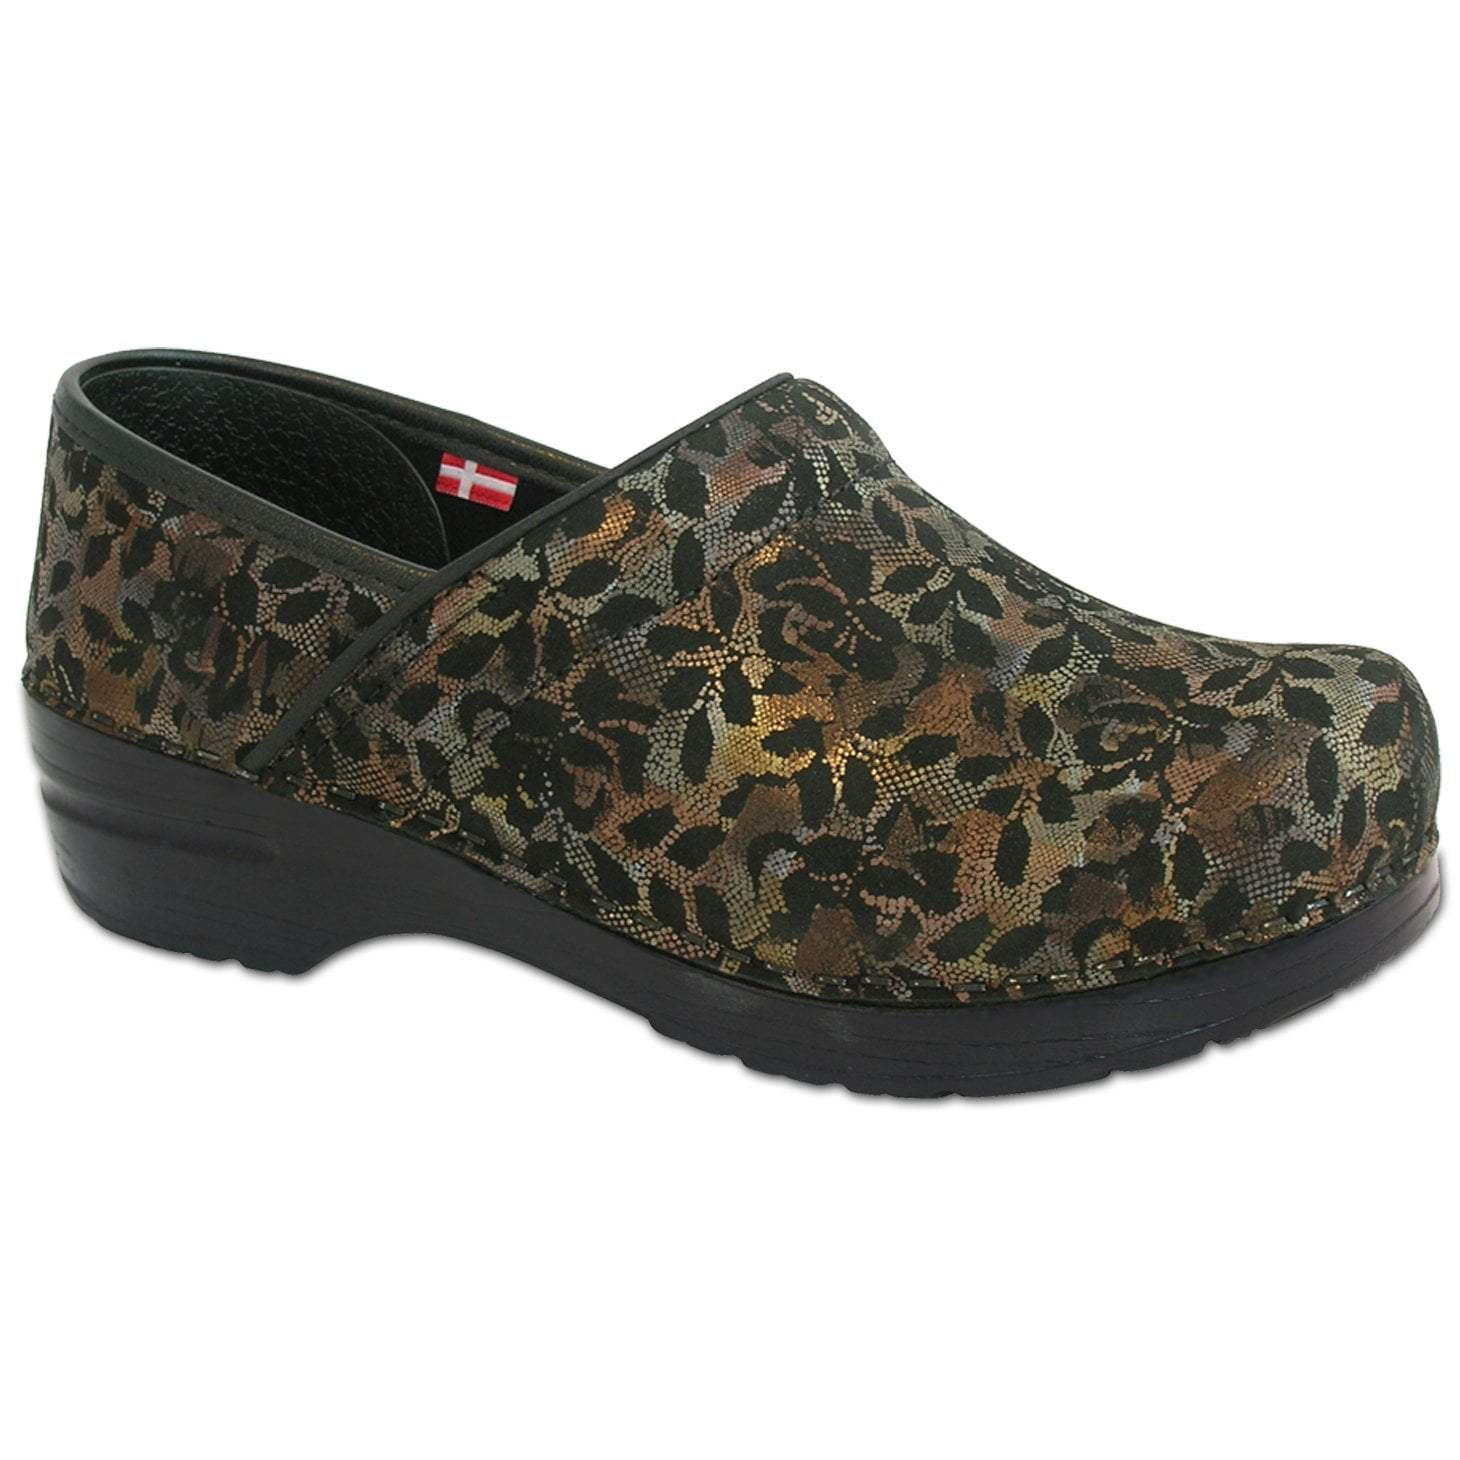 Sanita Kylie Women's Closed Back Clog